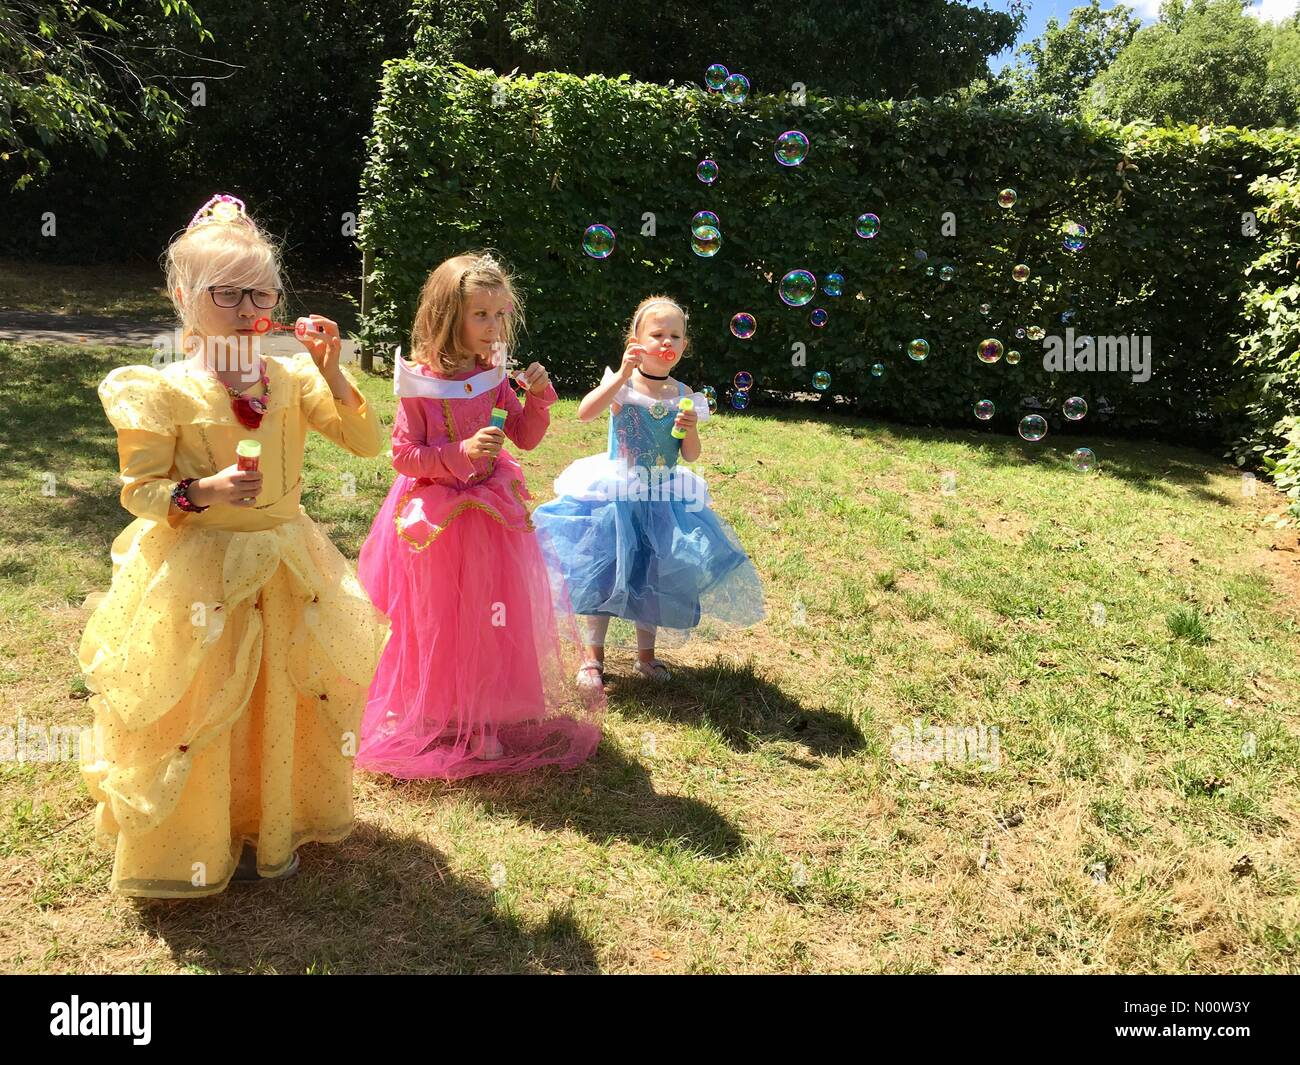 bfd01a2b8 Hampton Court, Greater London, England UK 28th July 2018 Cecily (in pink)